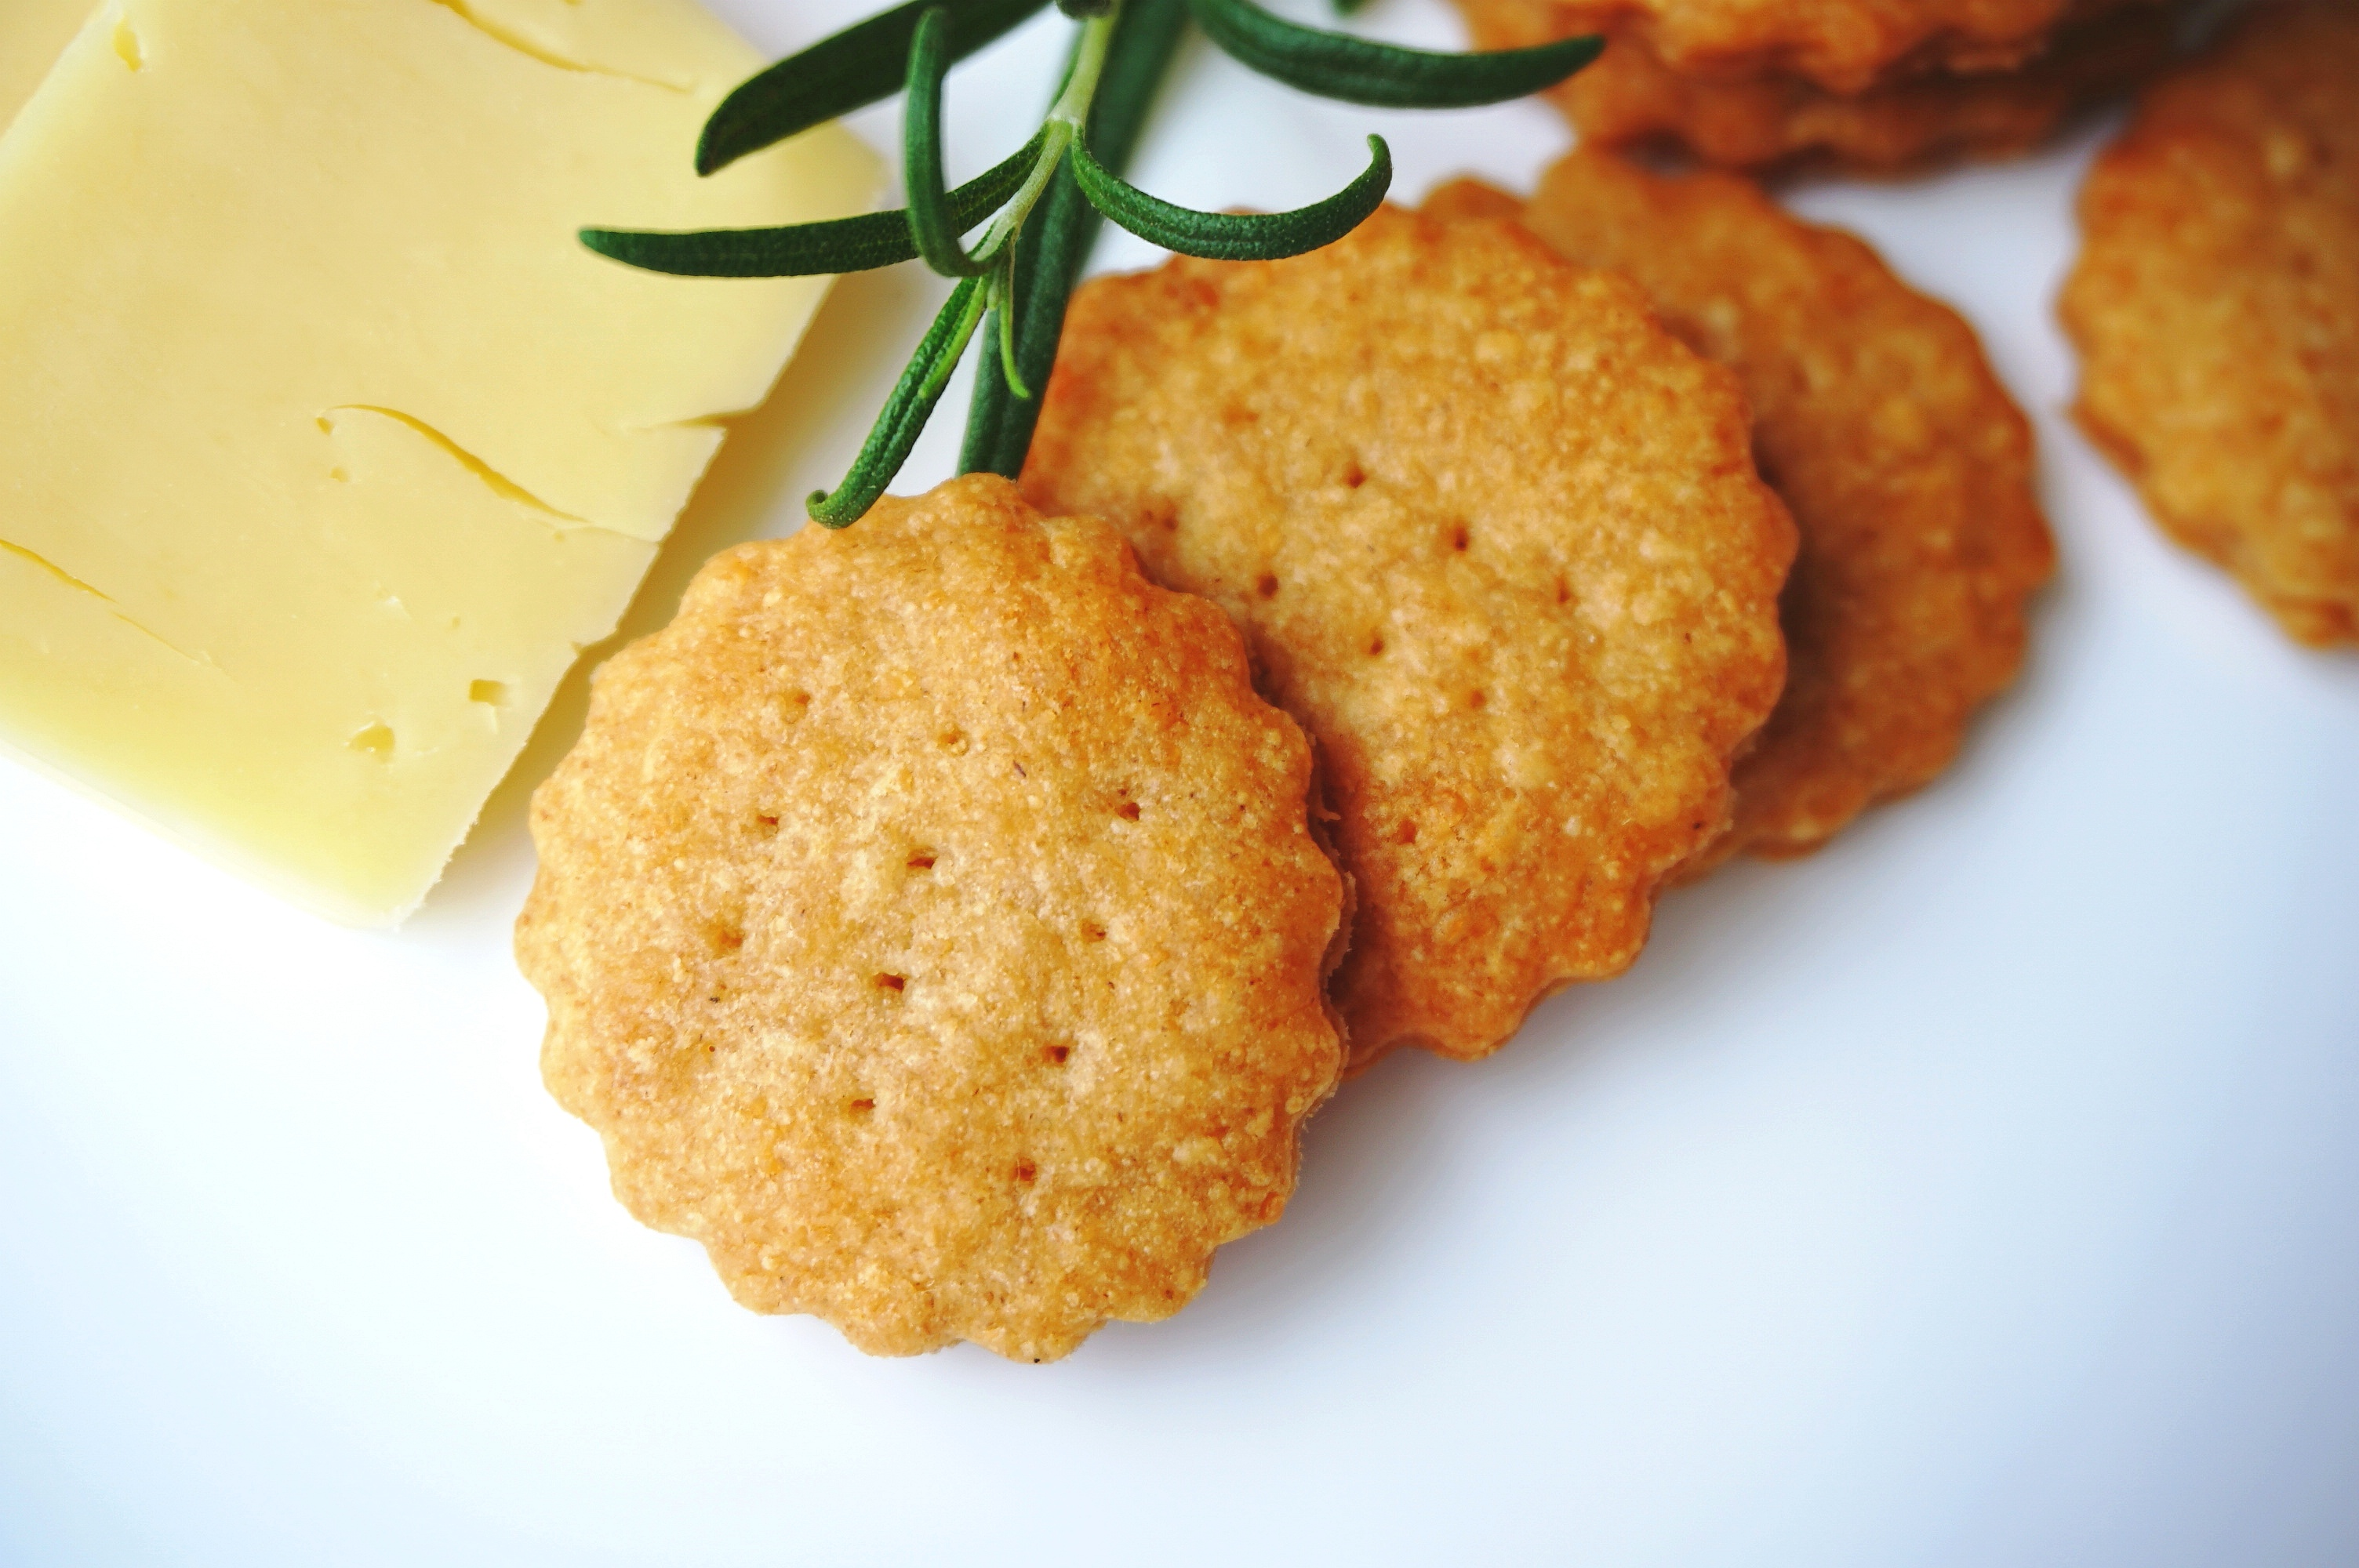 Crispy parmesan crackers with cheddar and white spelt flour. You can replace cheddar with yellow cheese and spelt flour with white flour. If desired, you can season them with a spice of your choice such as paprika, savory, oregano, thyme or basil.